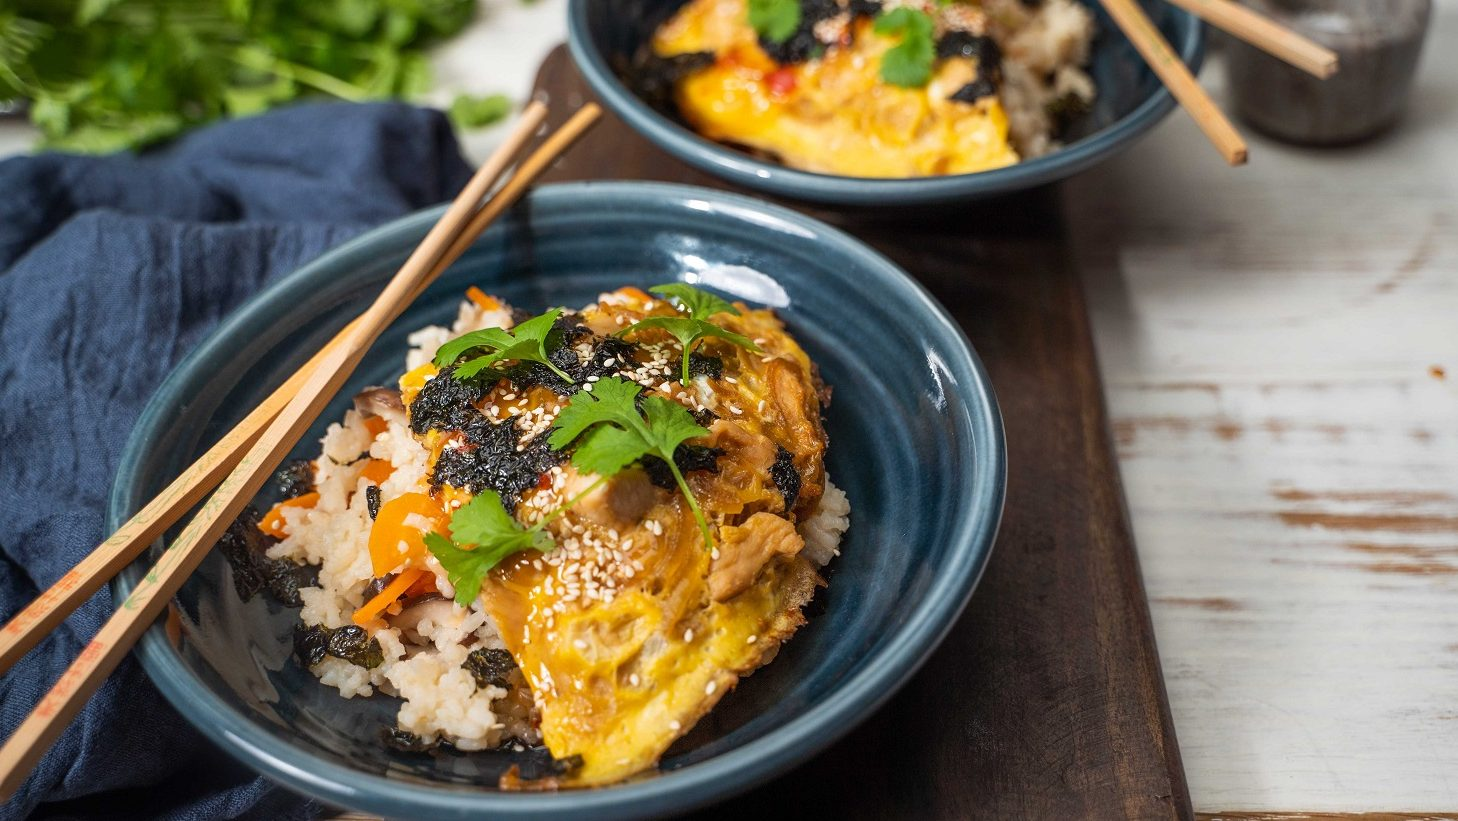 Two dark blue bowls of rice topped with egg, herb and nori, and chopsticks.